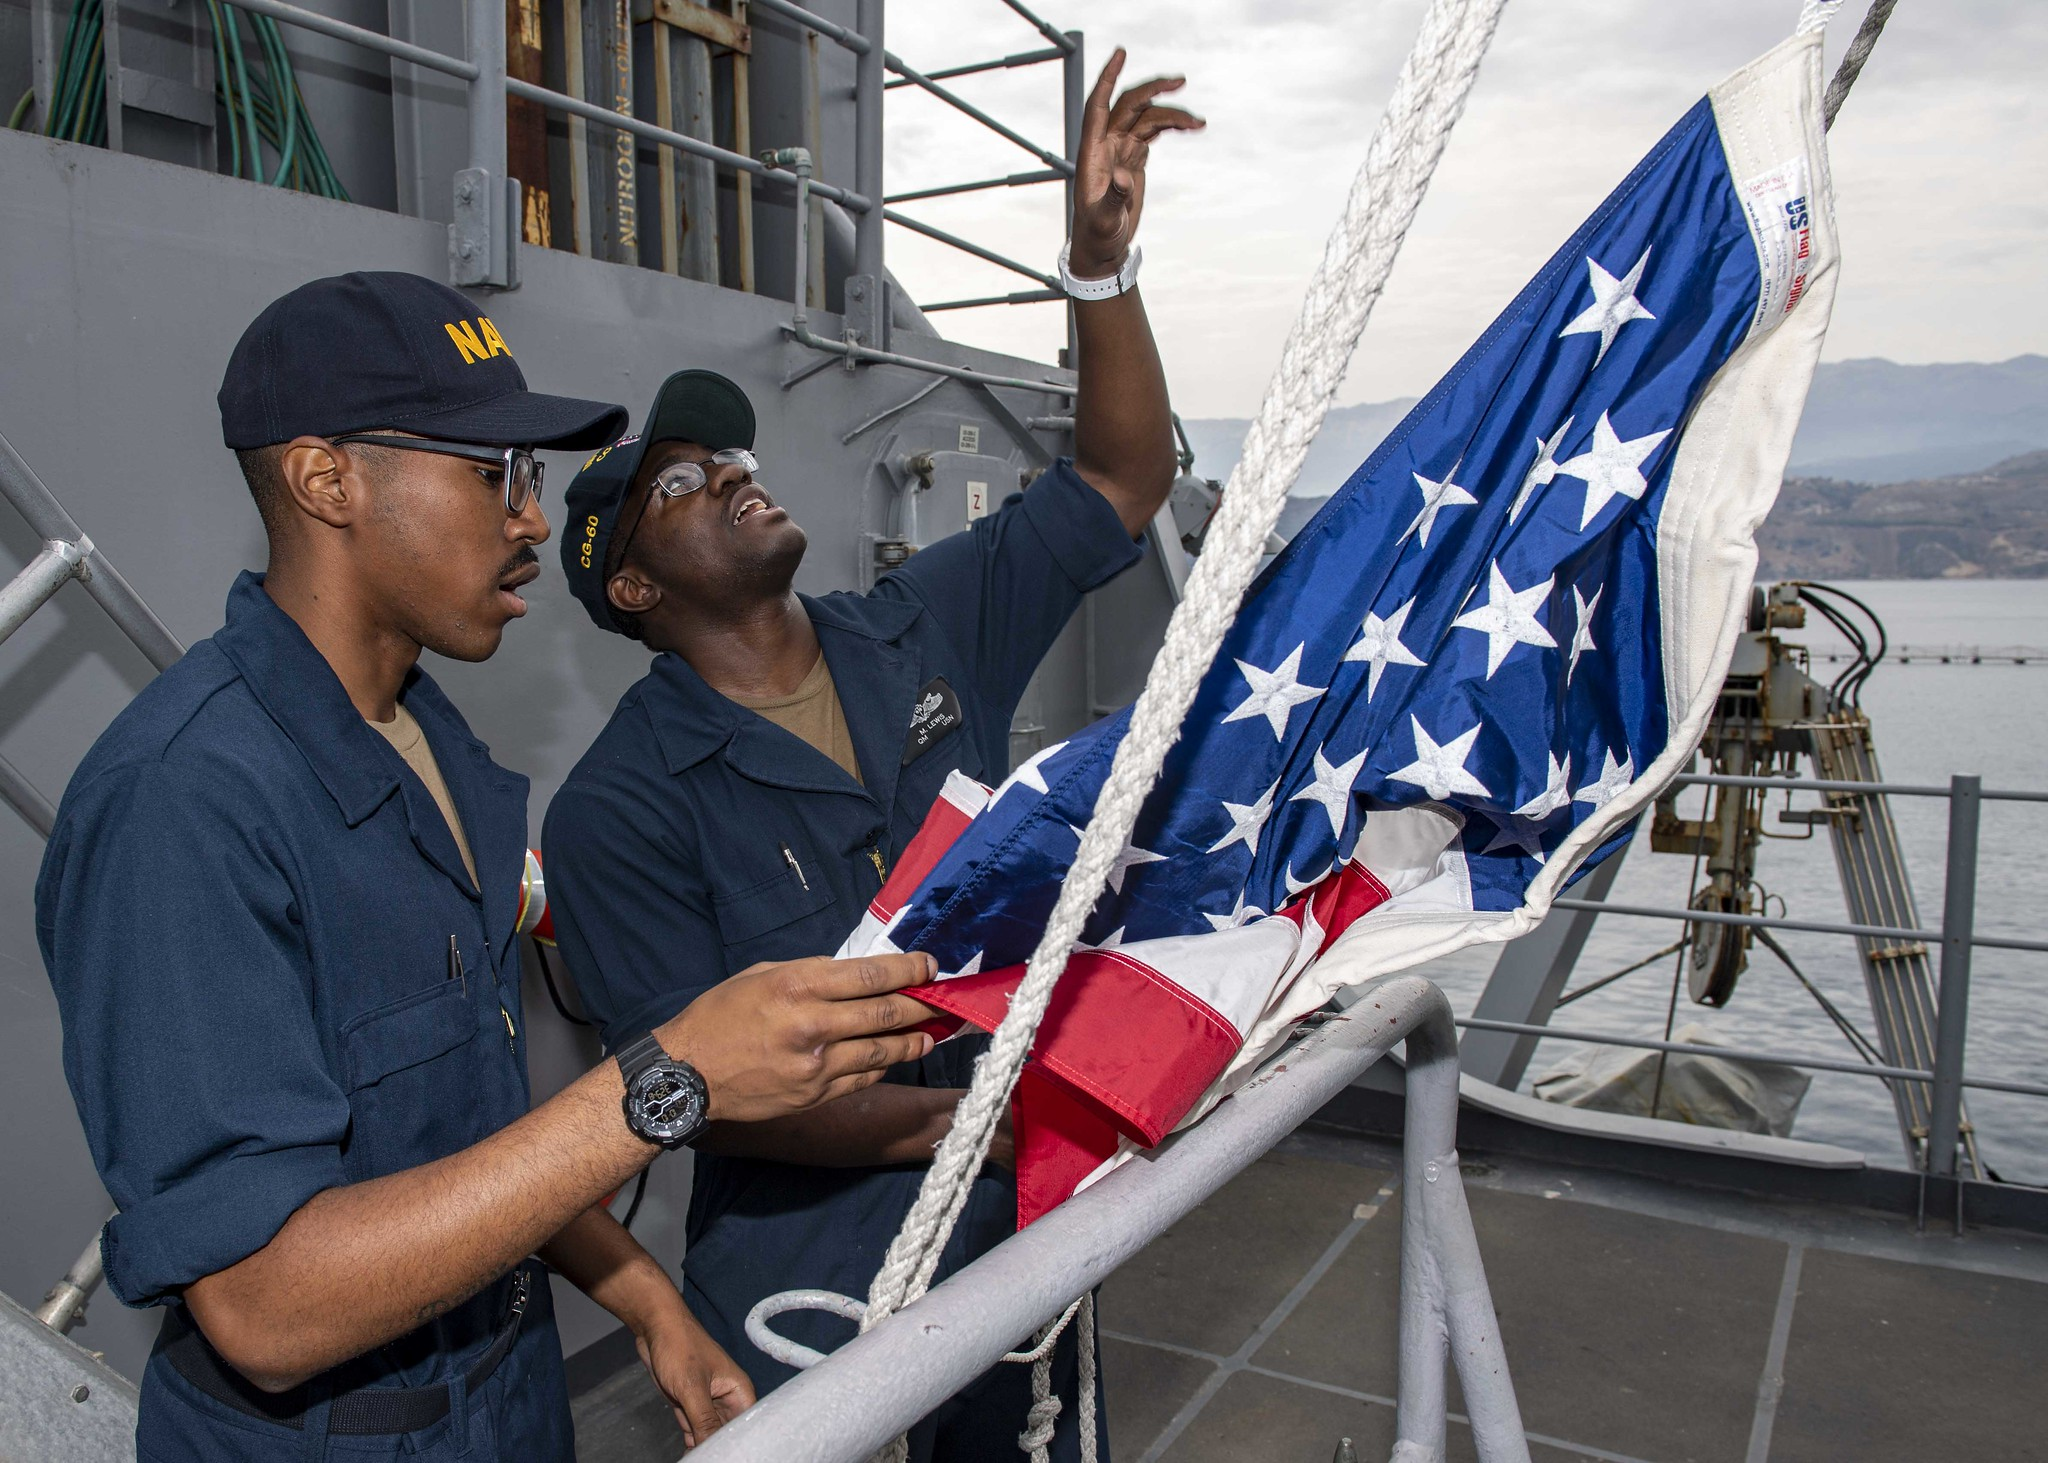 Quartermaster Seaman Marquis Lewis, right, instructs Quartermaster Seaman Khalil Hancock, on how to hoist the American flag as the Ticonderoga-class guided-missile cruiser USS Normandy (CG 60) prepares to depart Souda Bay, Greece, on Oct. 10, 2019. (Mass Communication Specialist 2nd Class Michael H. Lehman/Navy)